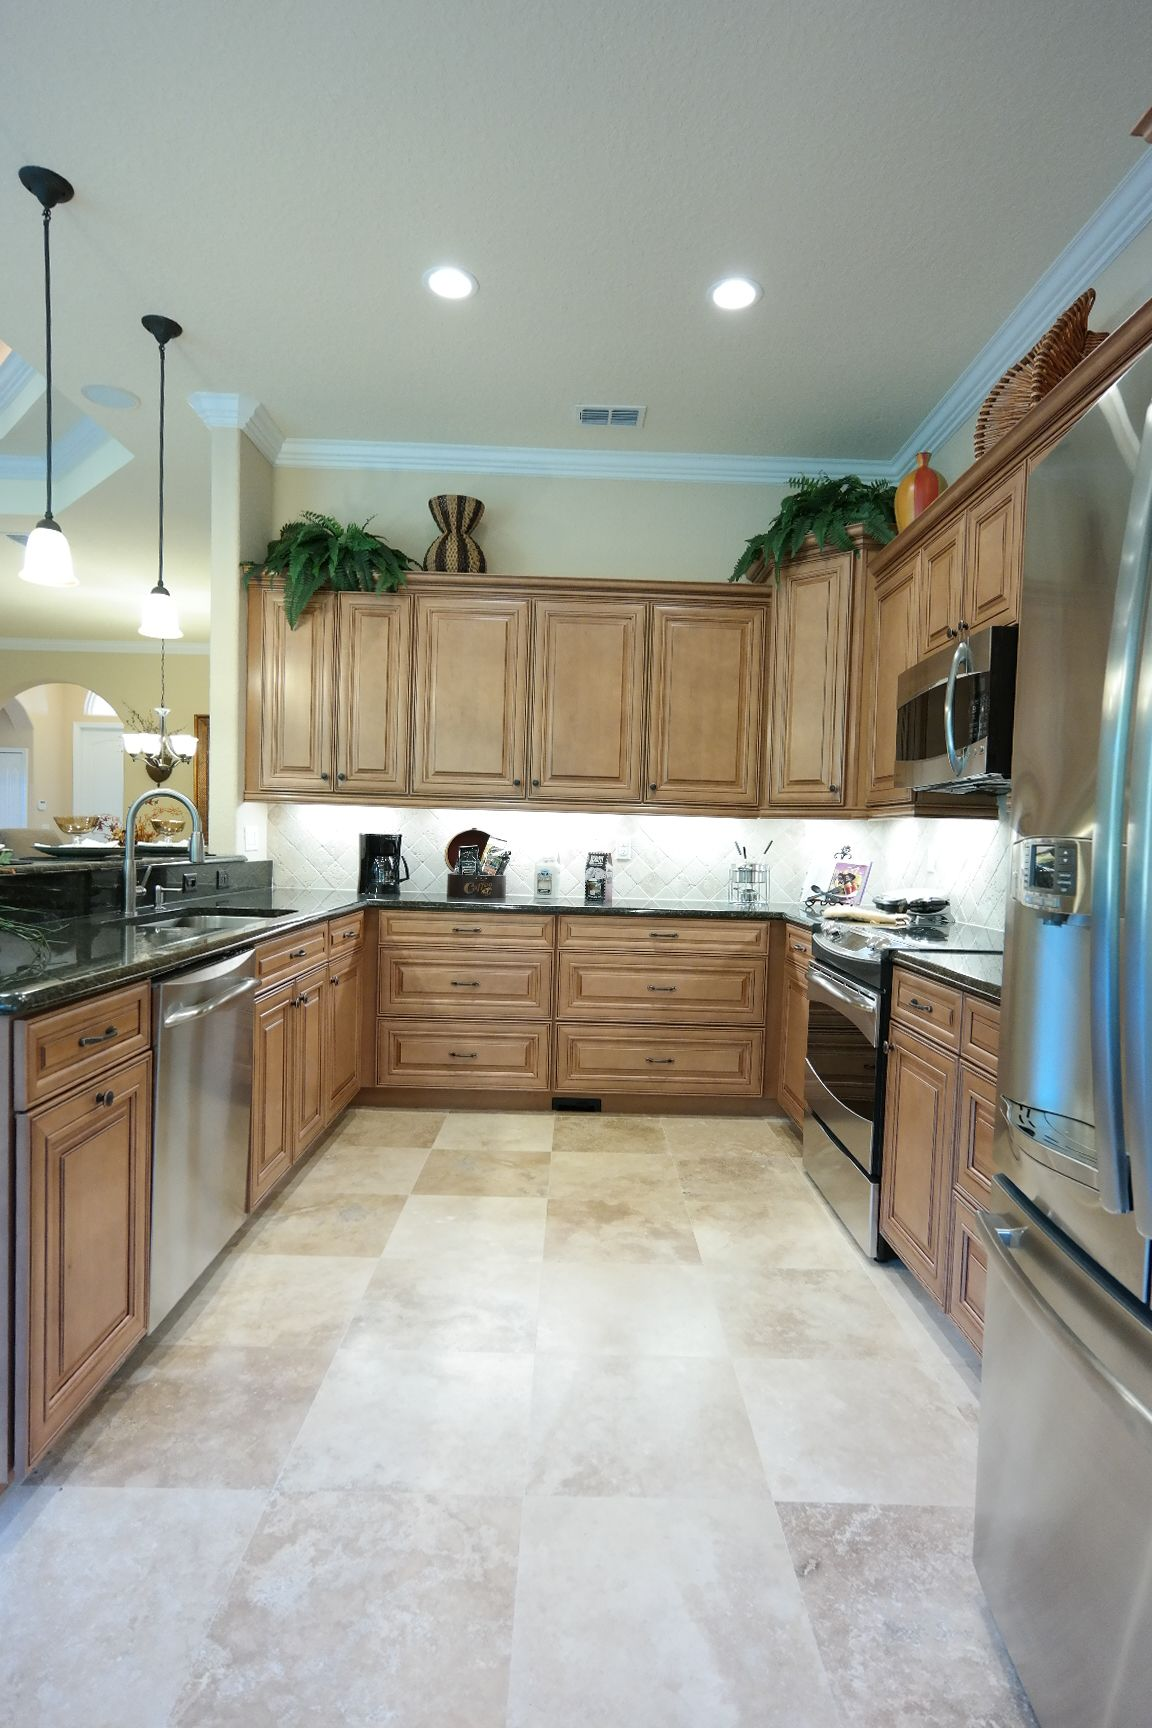 This Kitchen Features Granite Countertops, Stainless Steel Appliances, 36 Maple